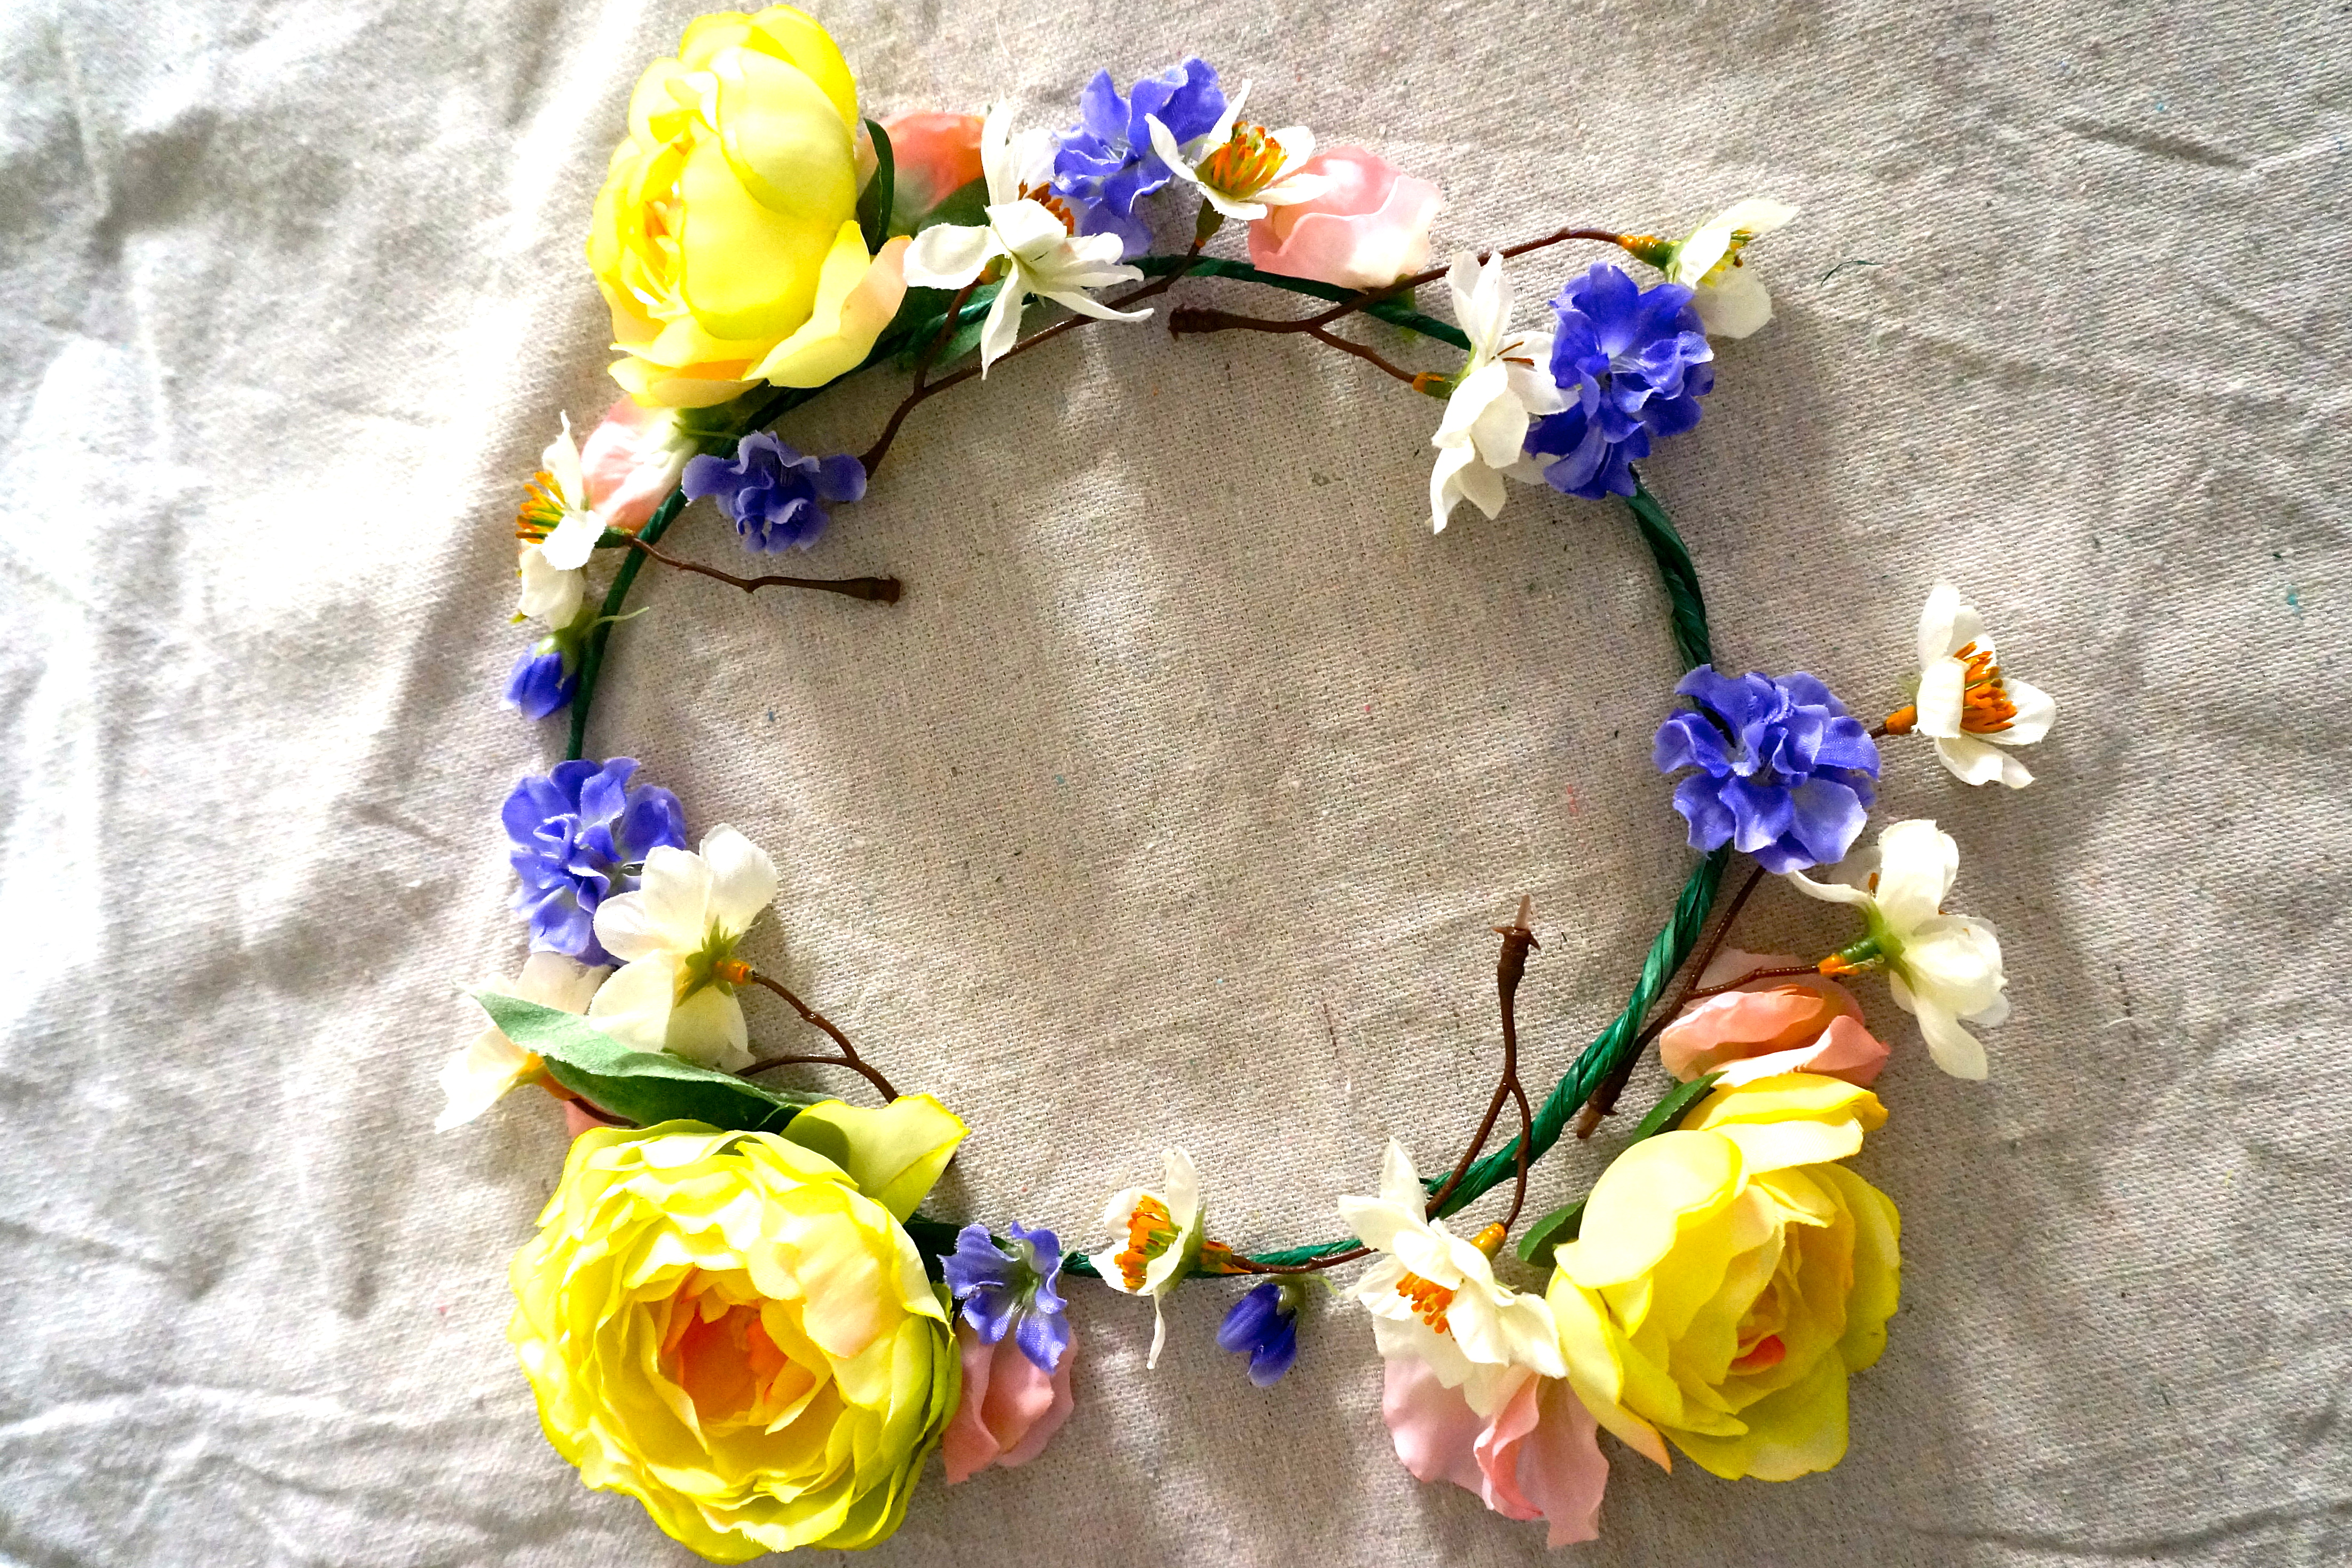 Diy flower crown glam york how to make a transparent flower crown izmirmasajfo Choice Image